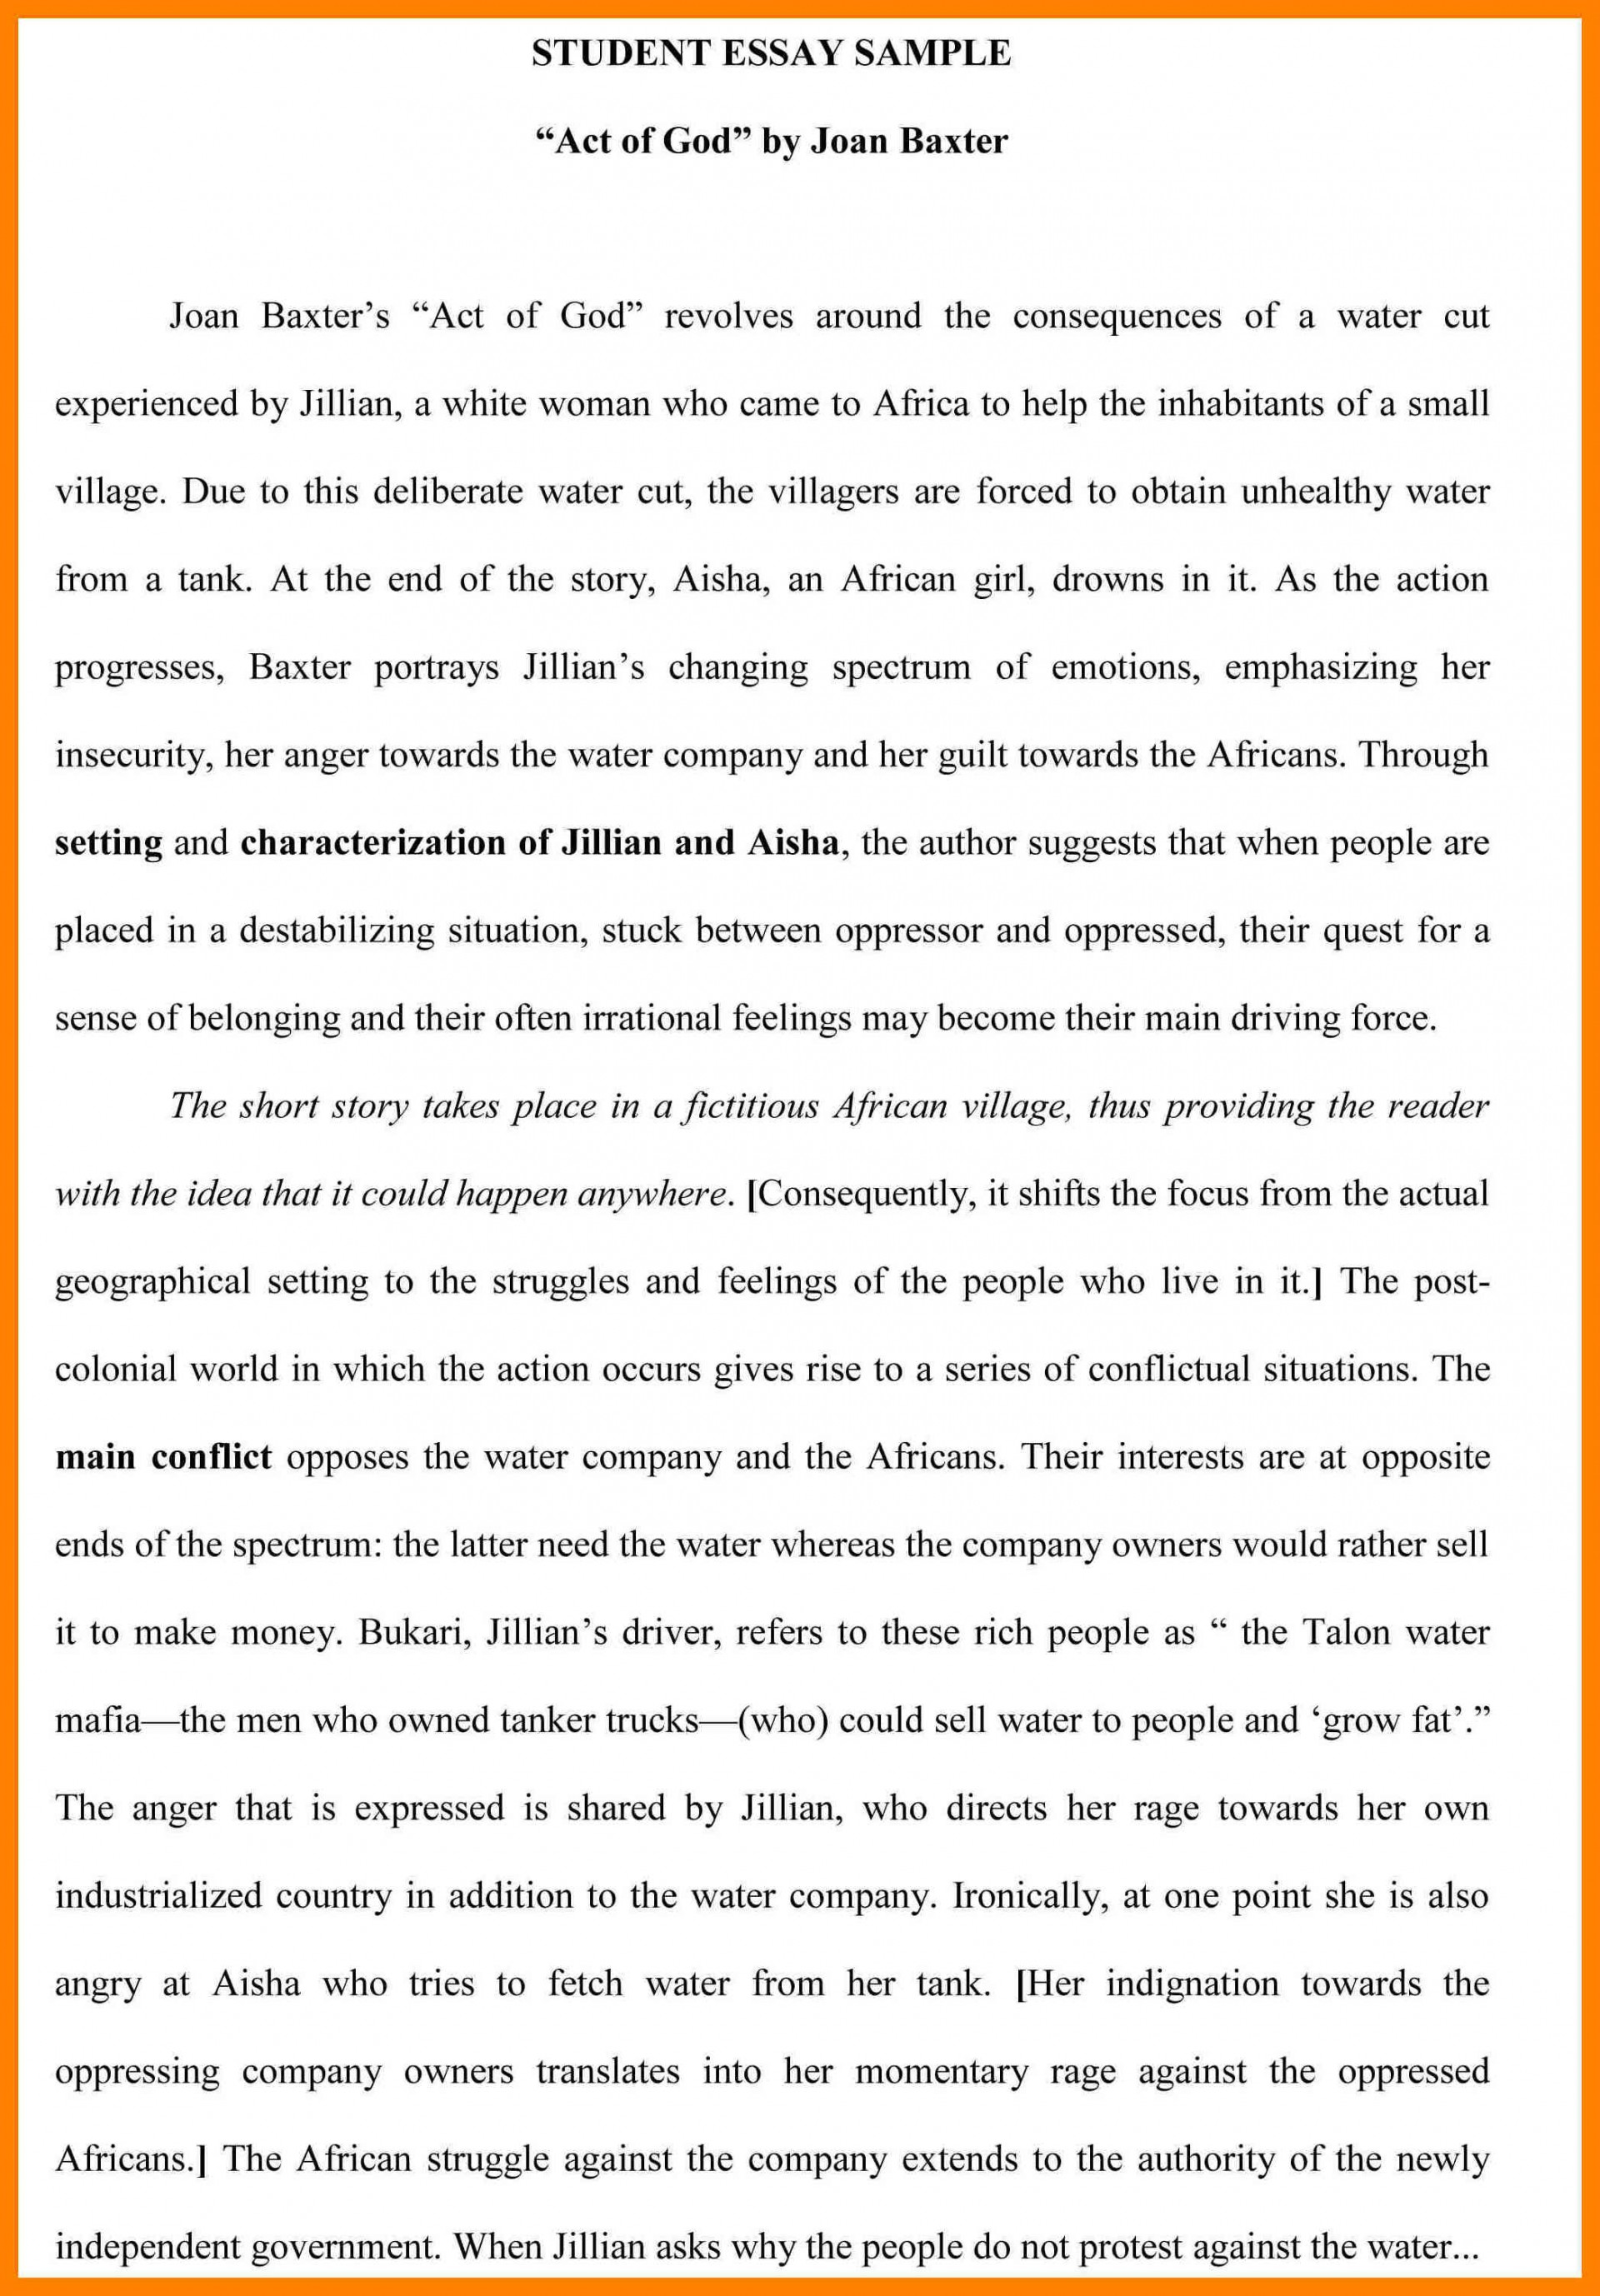 004 Essay Example How To Write An Act Sample Math Test Elmifermetures Com Ideas Collection Awesome Of Livesto Essays Pdf New Topics Dreaded Examples Template 1920